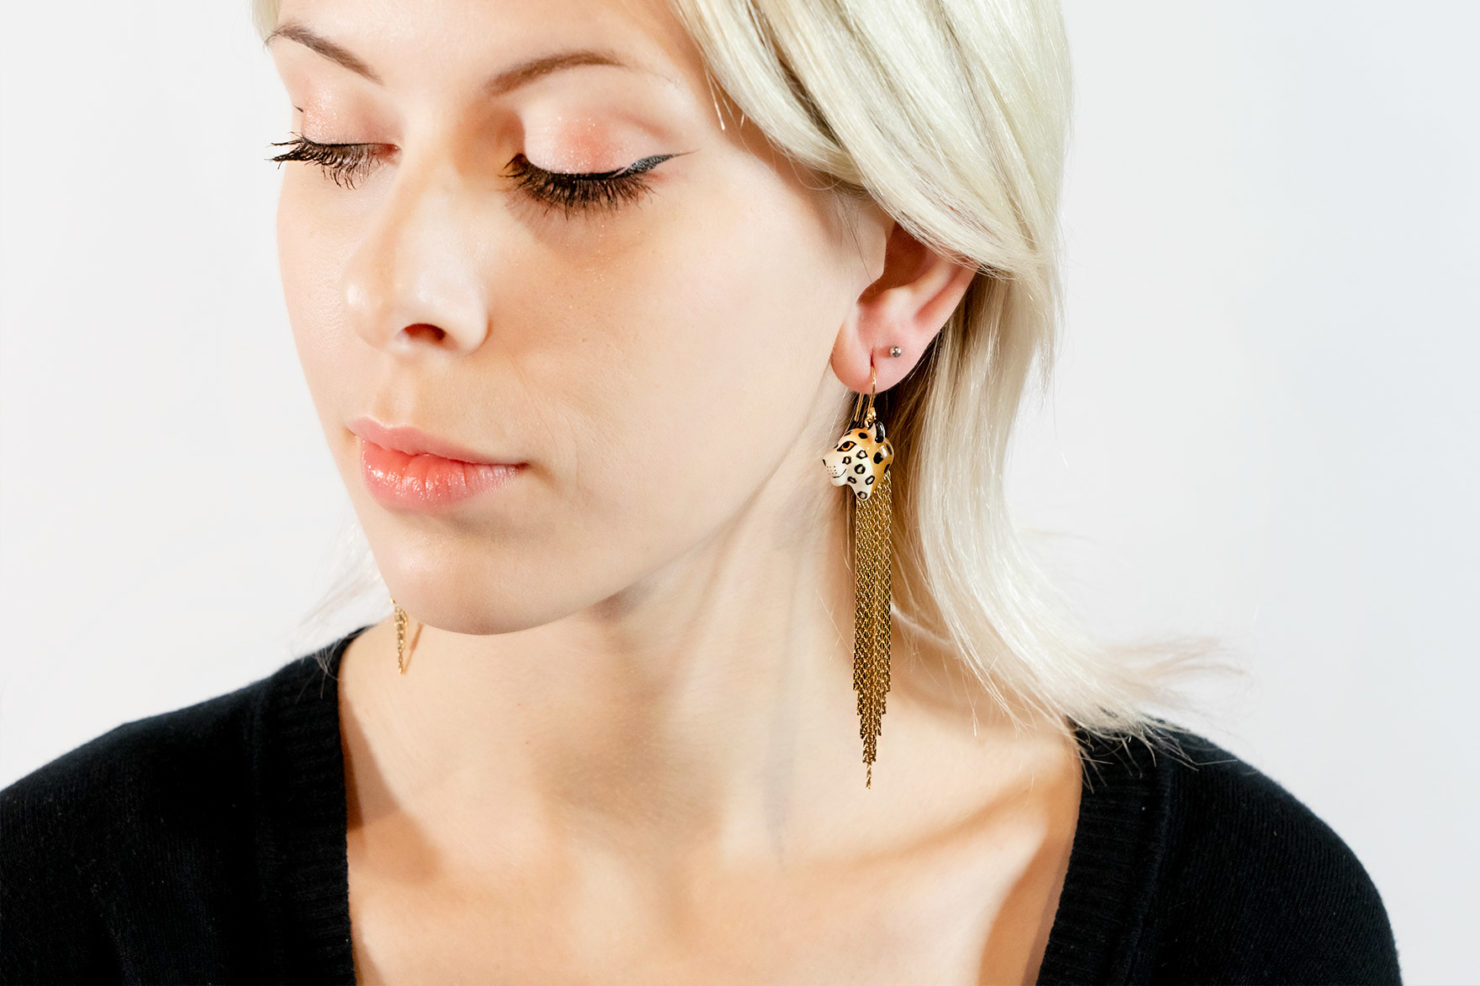 TIGER FRINGE EARRINGS – NACH